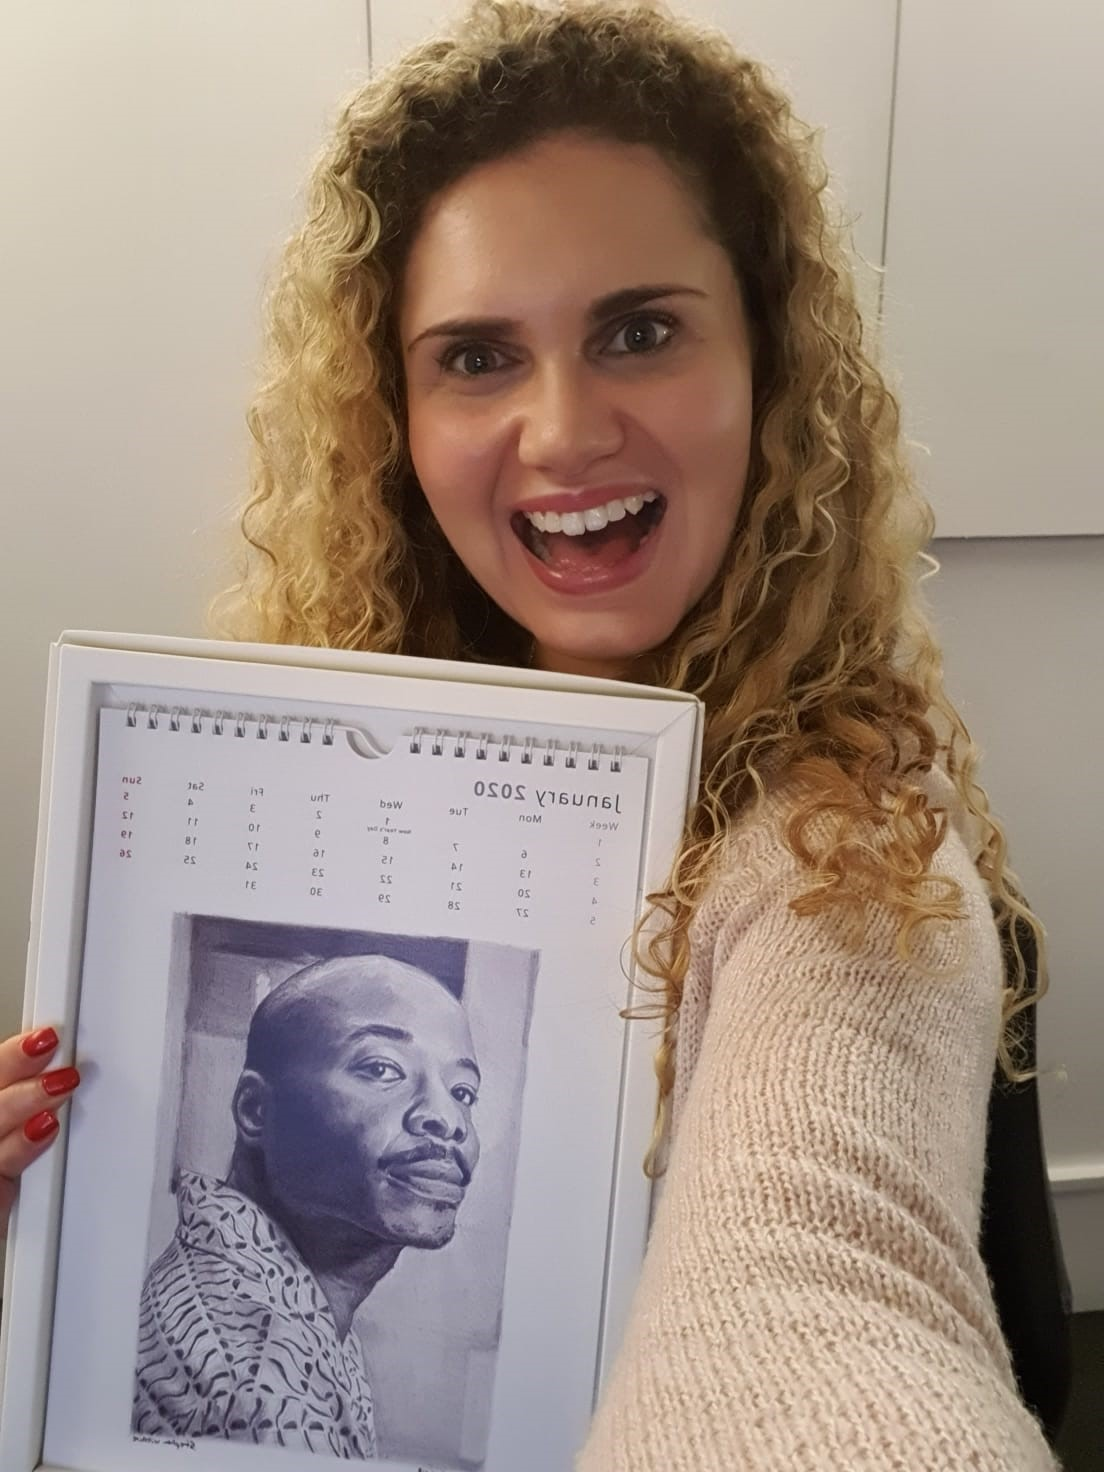 Rachael holds up the new Stephen Wiltshire calendar for the Snap office